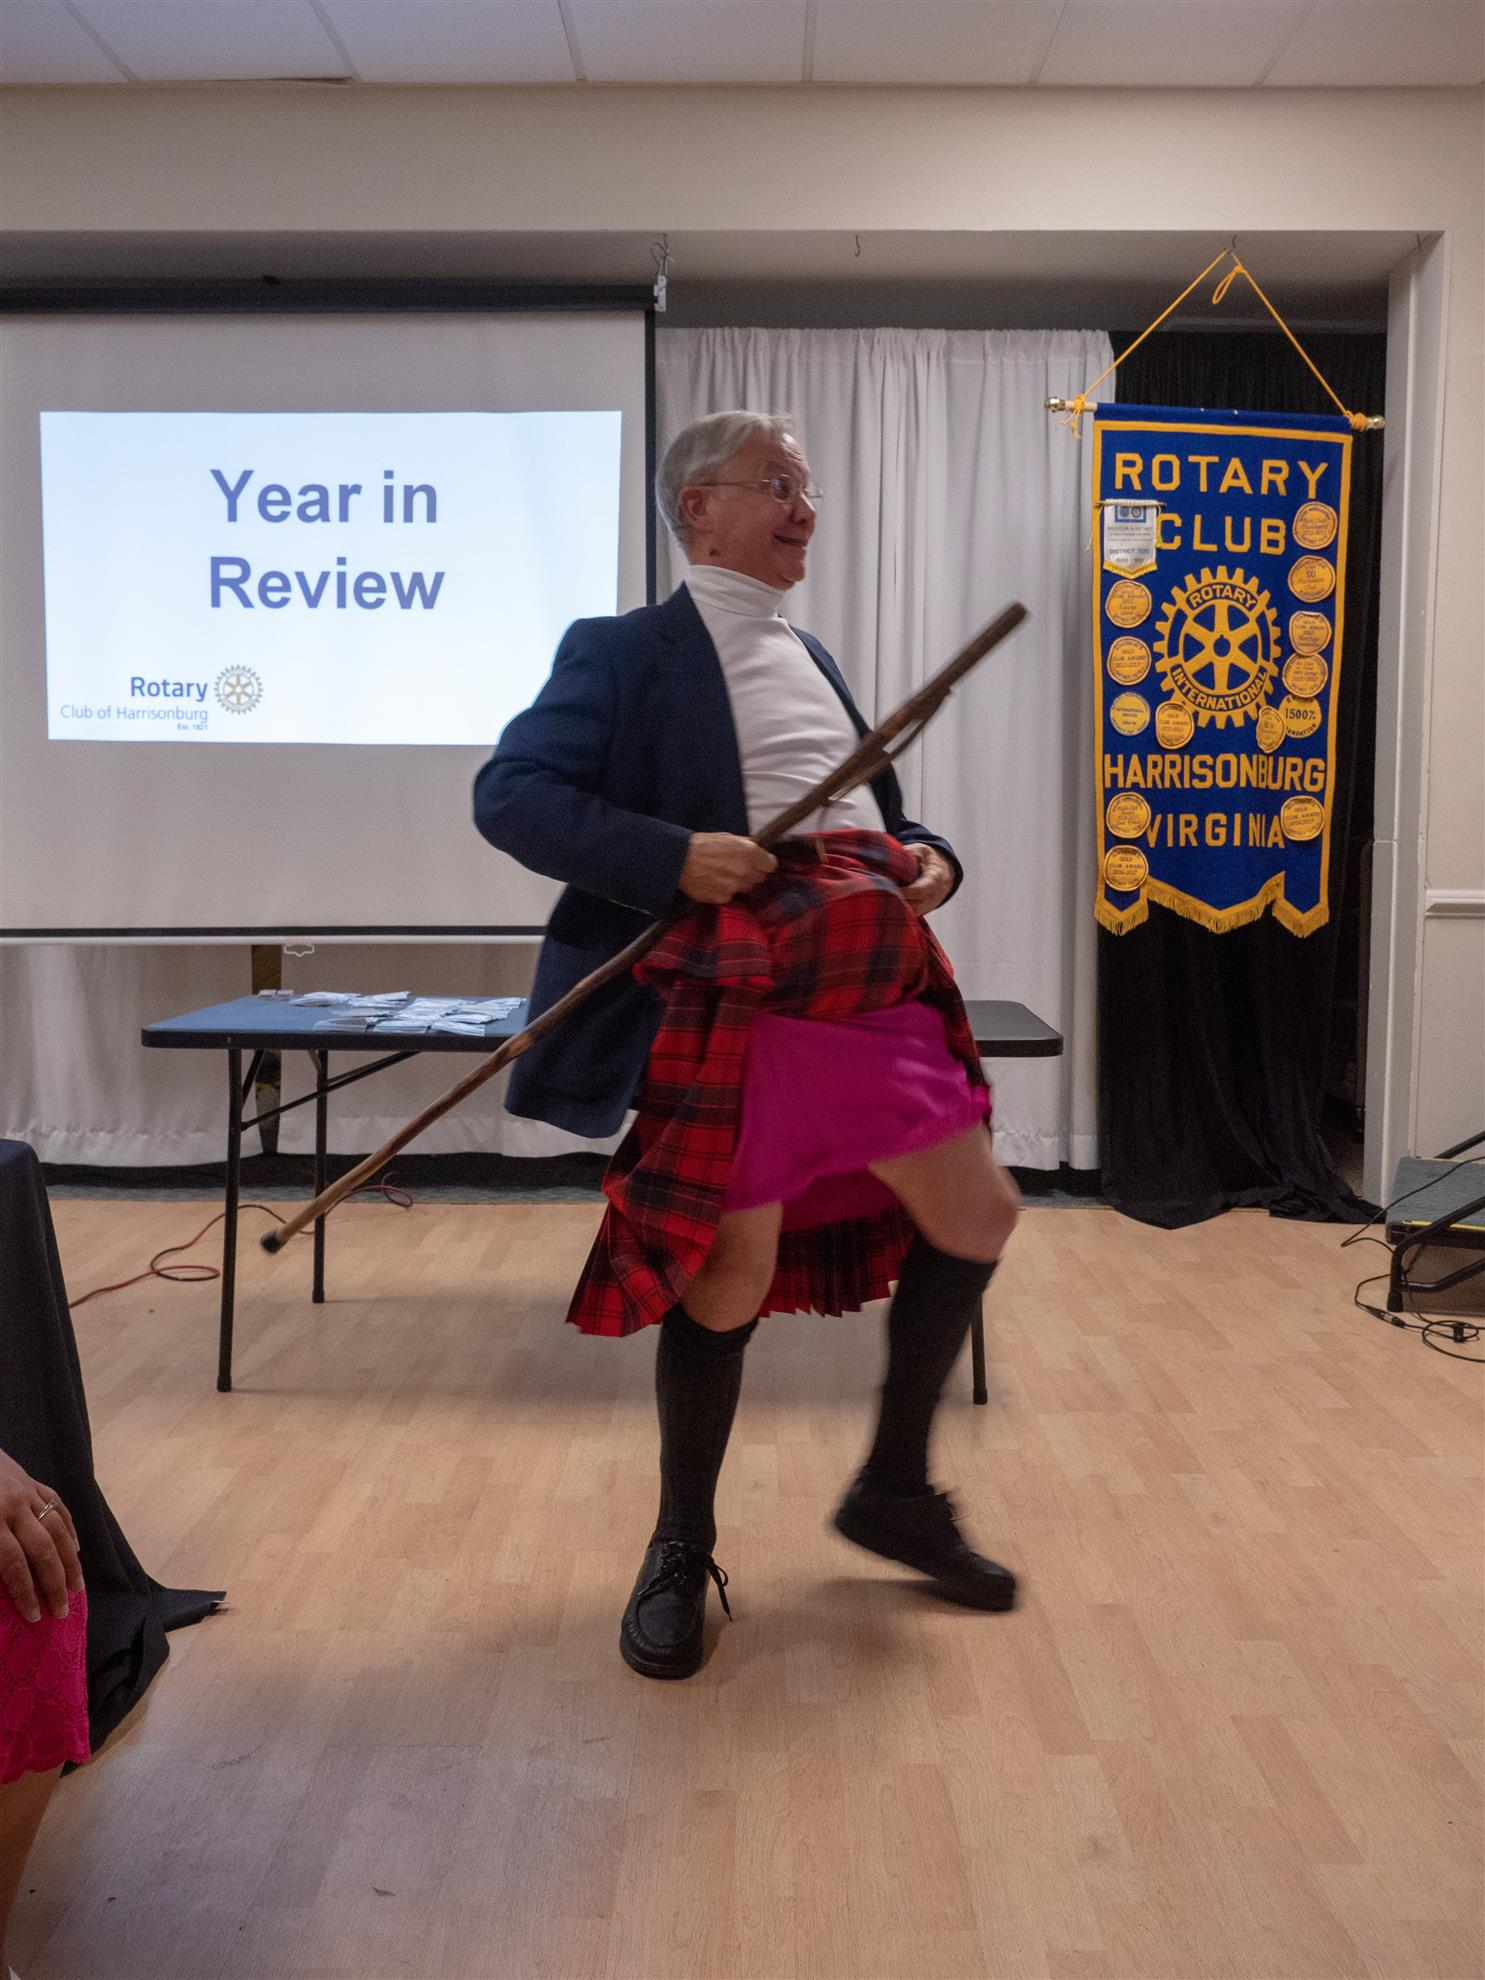 Club member Bill entertaining the Club with an interesting dance!